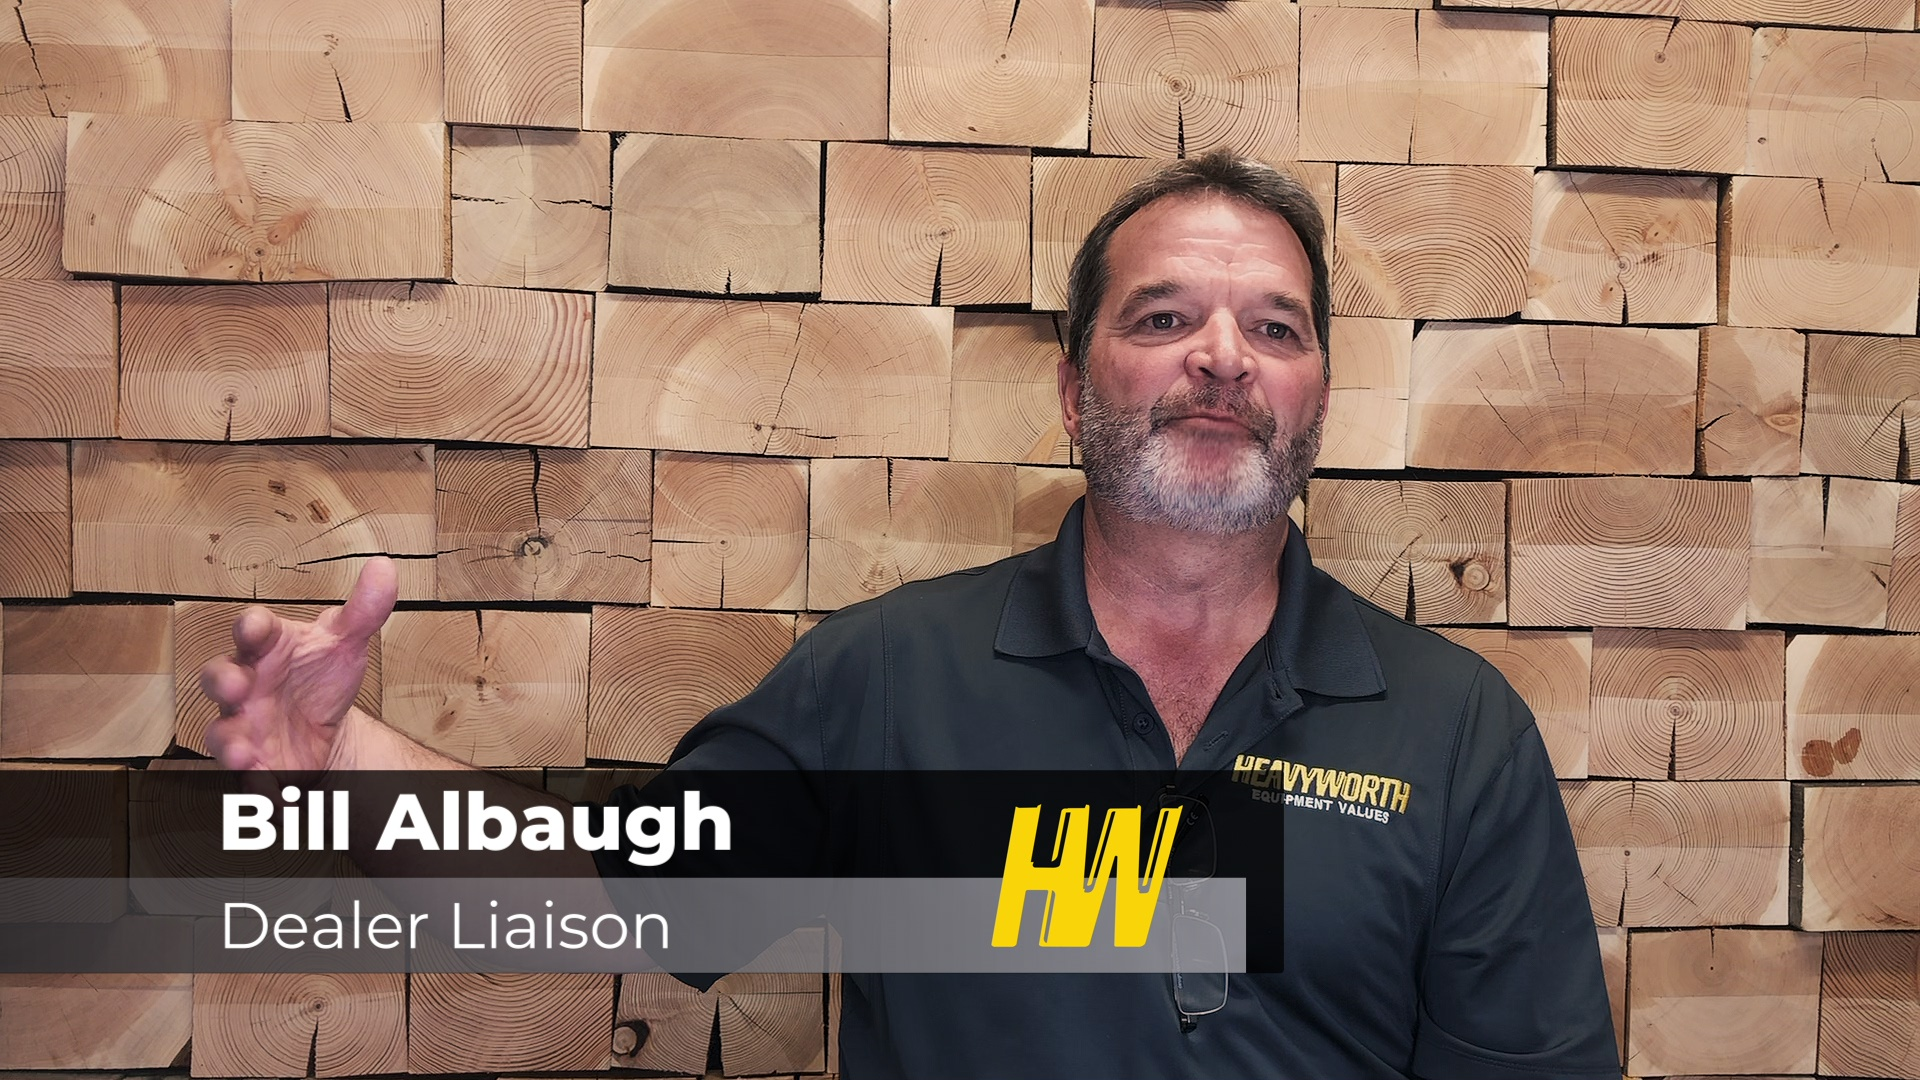 Bill Albaugh explains what to look for when valuing tillage equipment and why there's not a large impact on values from no-till farming practices.